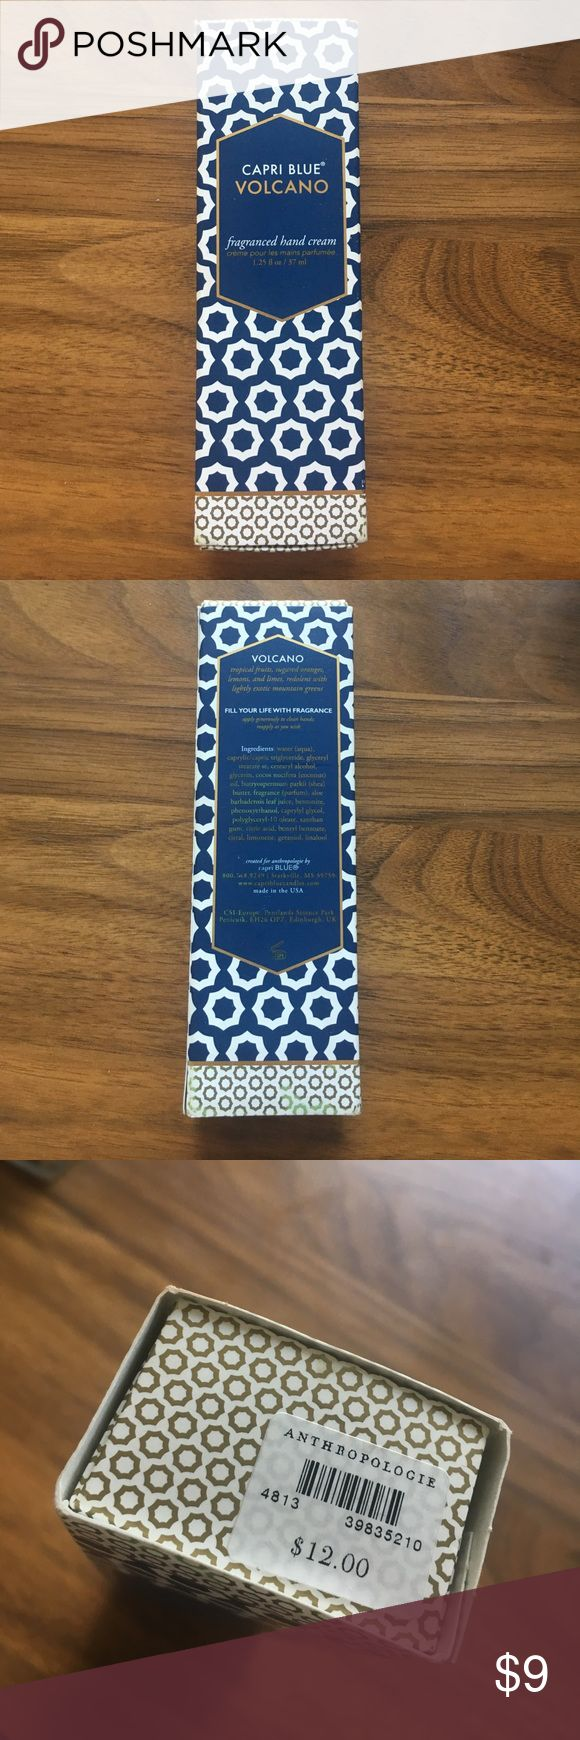 """Anthropologie, Capri Blue VOLCANO hand cream, NIB The volcano hand cream fragrance says it is """"tropical fruit, sugared oranges, lemons, and limes, redolent with lightly exotic mountain greens.""""  It is a 1.25 oz tube.          It has never been opened and is still in the box with the tags. I did just notice there is a small tear in the inner box (see pic).  Comes from a clean, mom-smoking home. Anthropologie Makeup"""